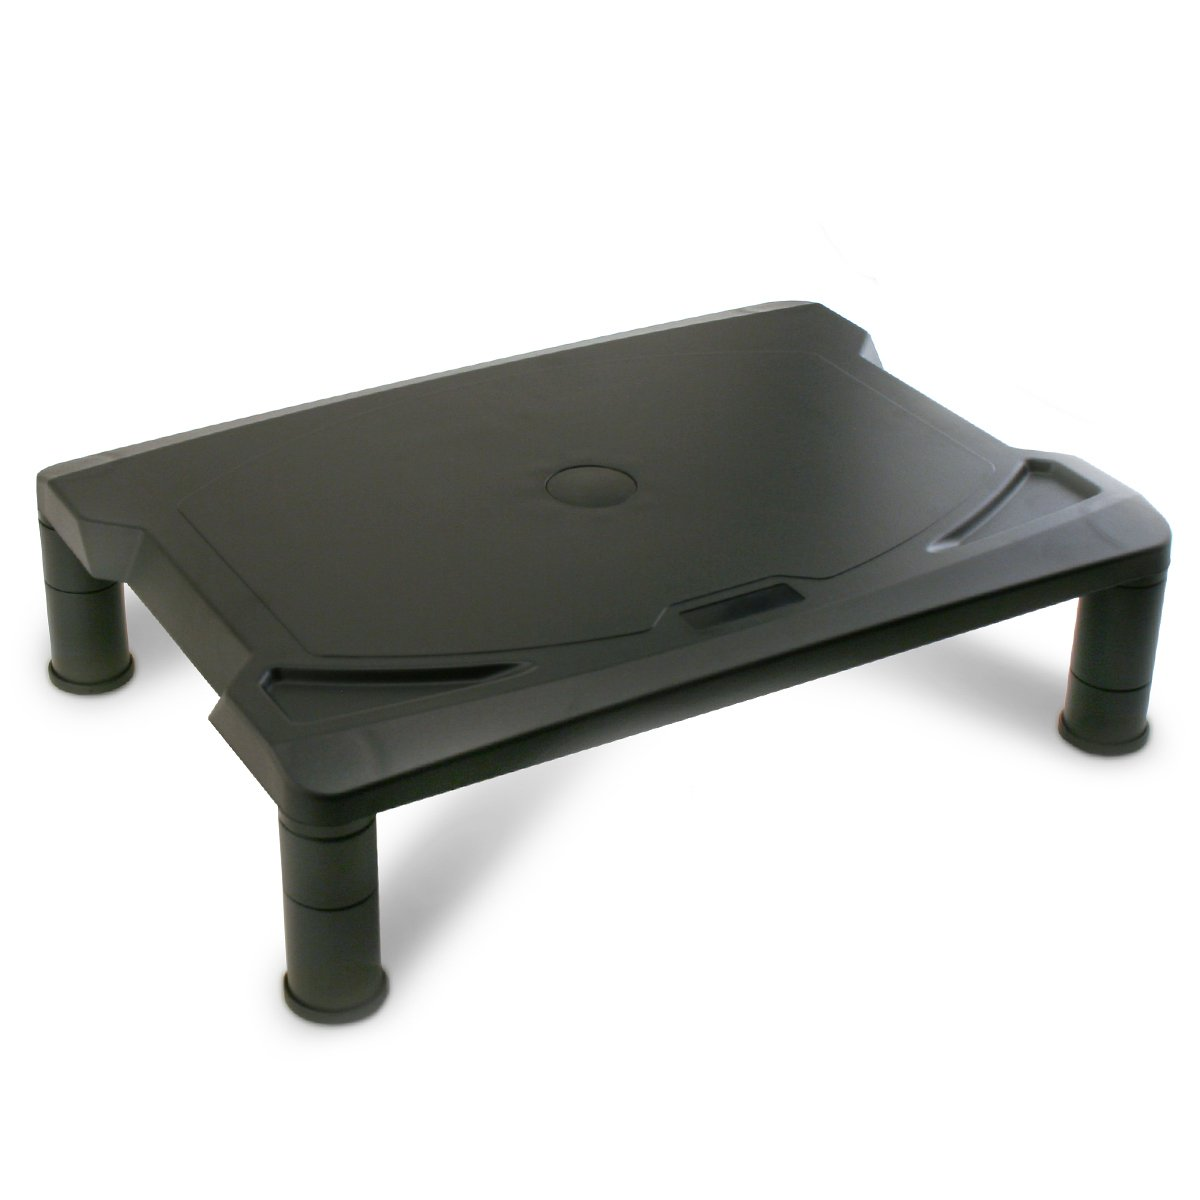 2 Lb. Depot Monitor Stand, Printer Stand with Adjustable 3 Heights Riser, 15.5 x 11.5 Inches, Black Plastic